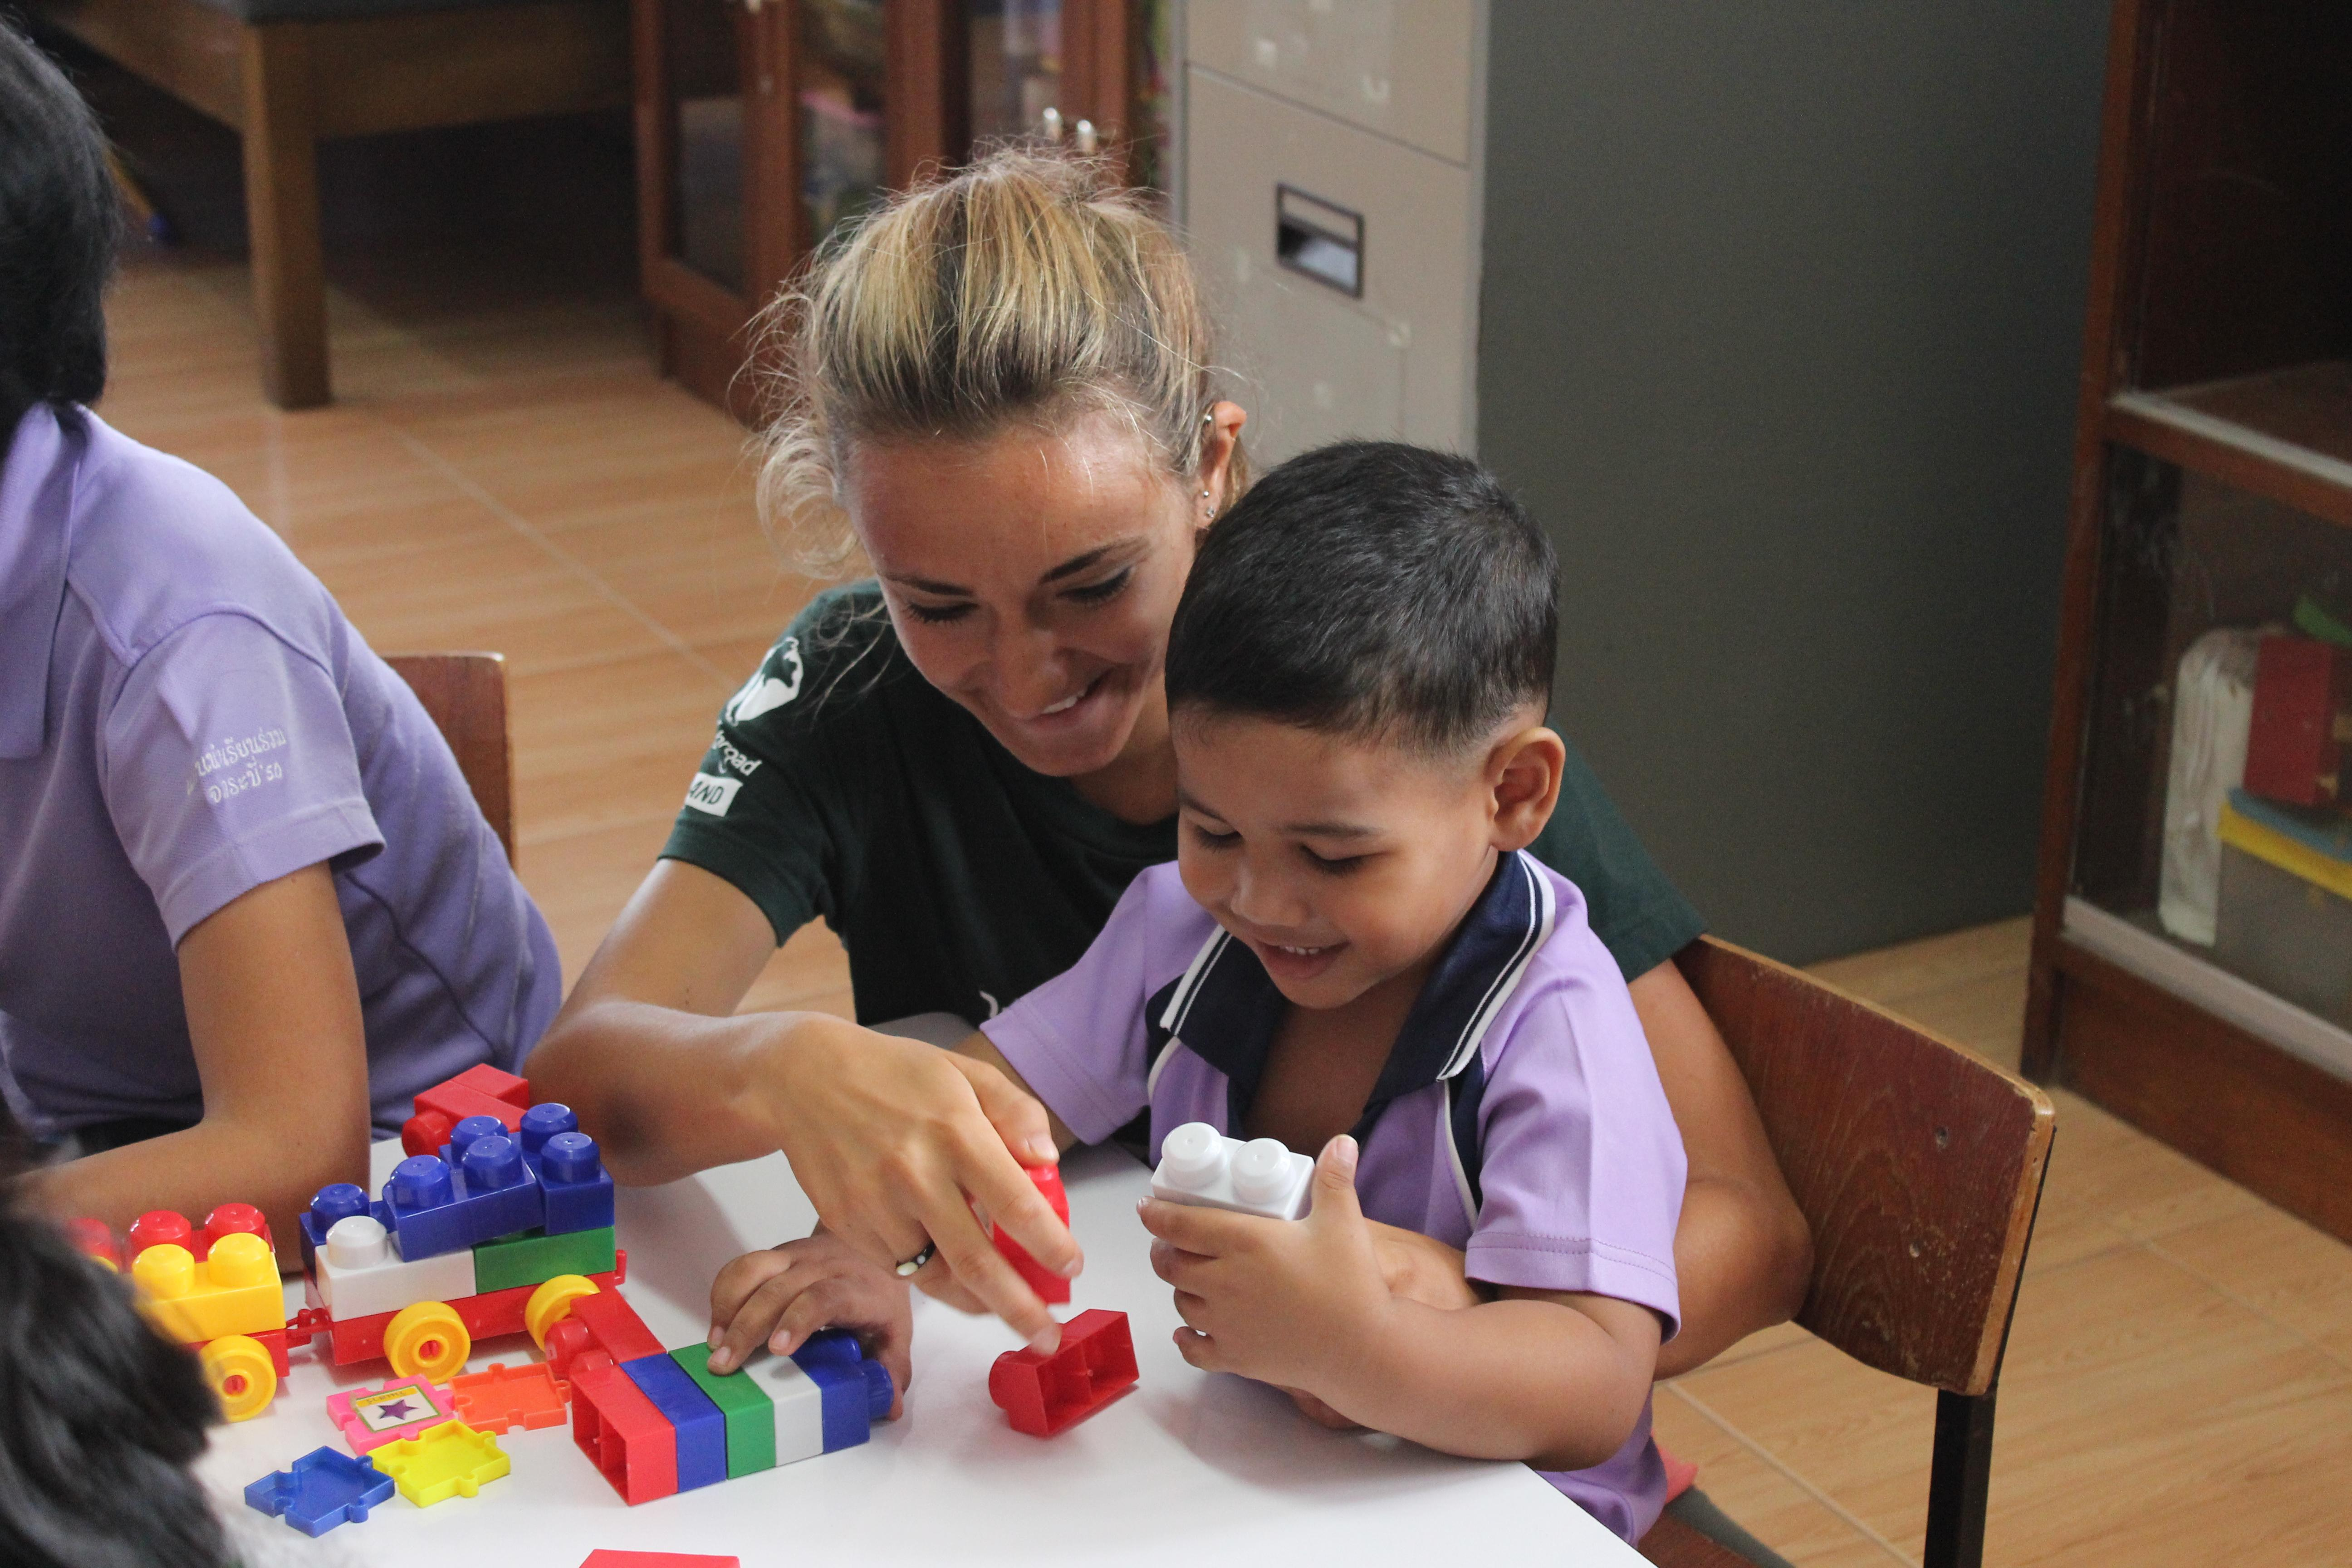 Female Childcare volunteer helps young boy build lego blocks in a day care centre during Care placement in Thailand.